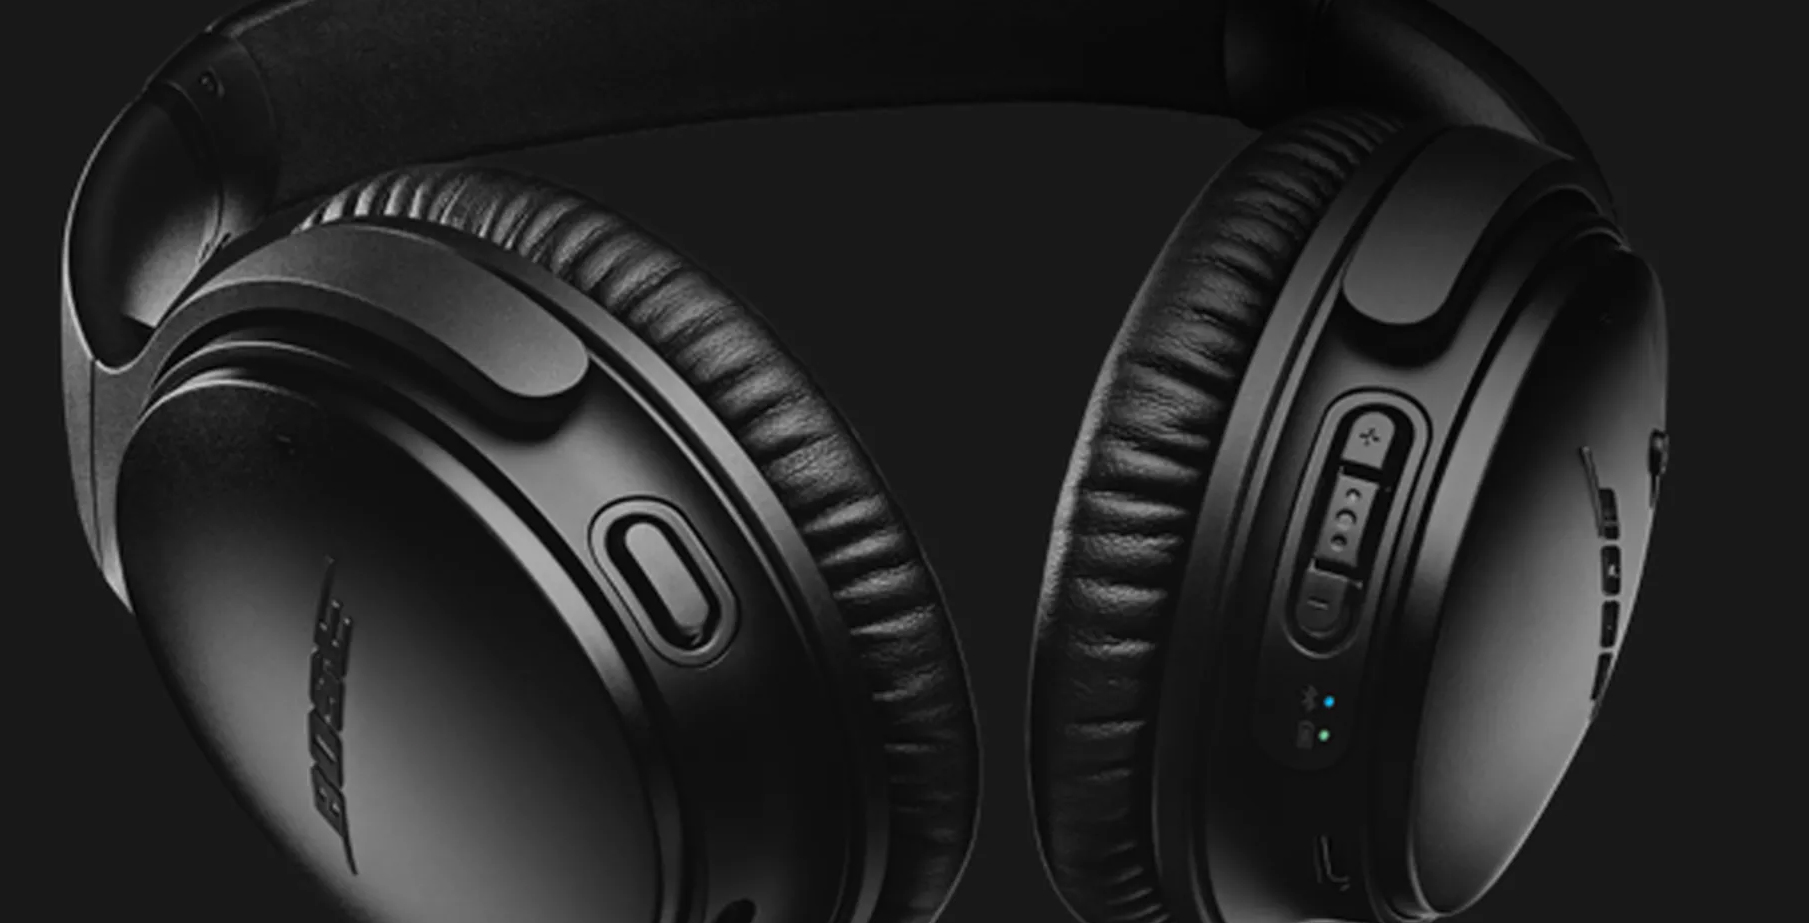 Bose QuietComfort 35 II To Be First 'Bisto' Headphones With Google Assistant